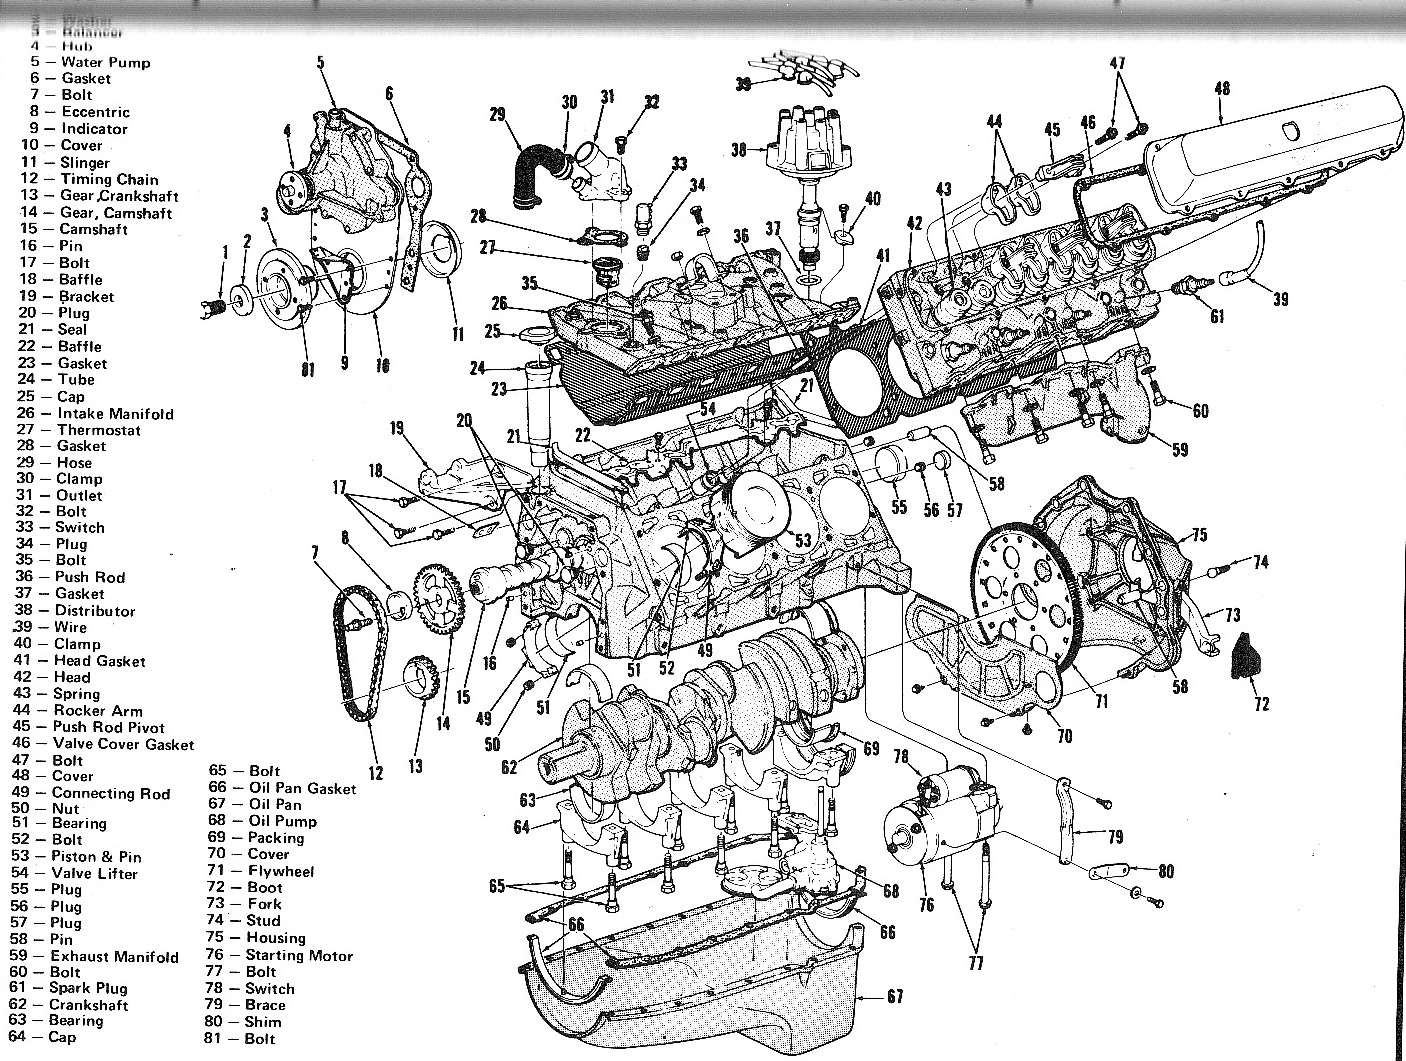 How can get full engine diagrams ? | GrabCAD Questions